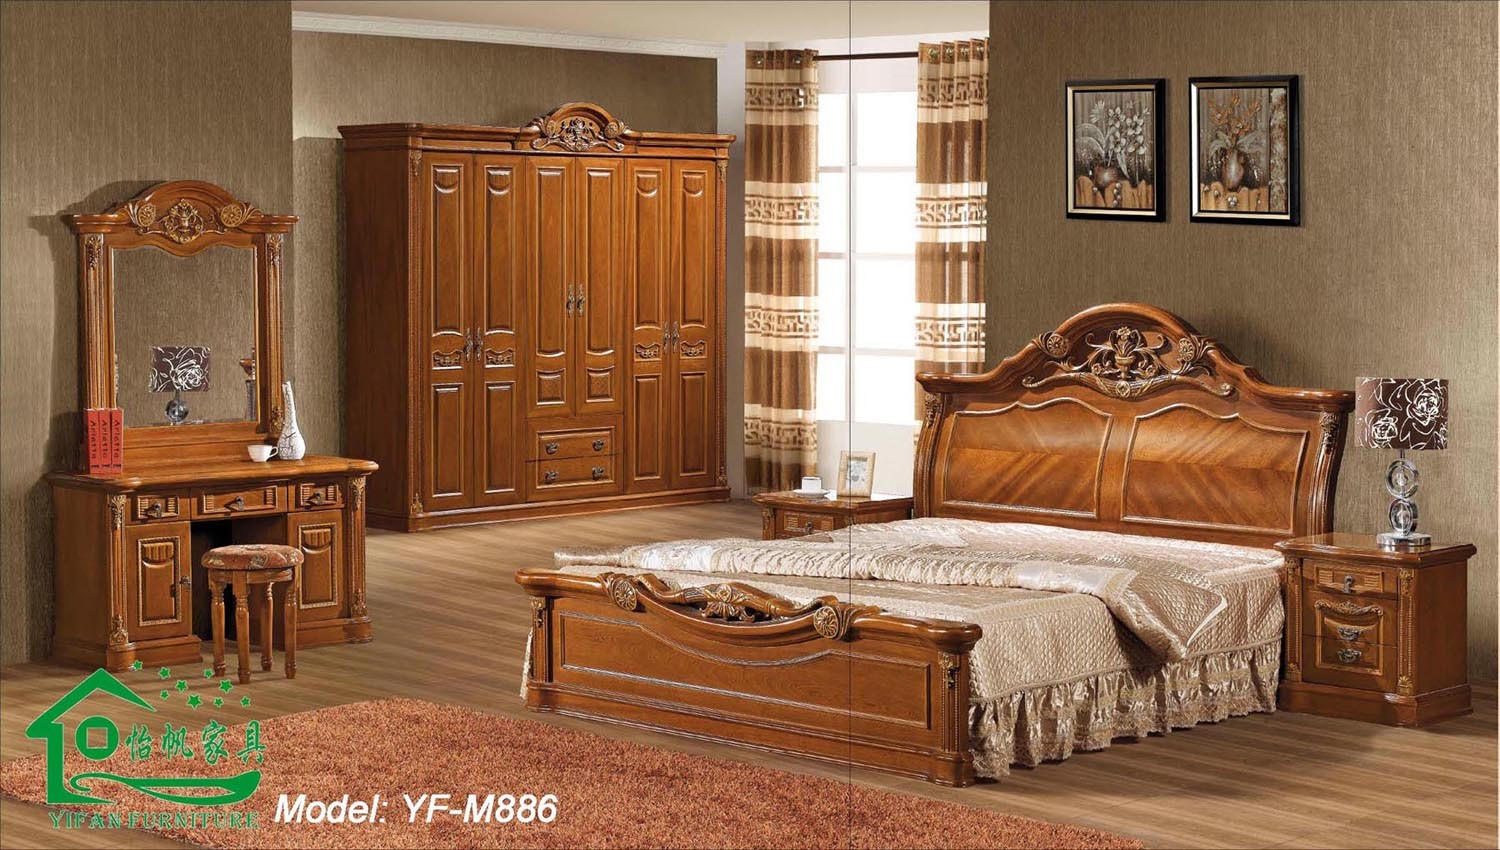 Amazing Solid Wood Bedroom Furniture Designs 1500 x 850 · 253 kB · jpeg